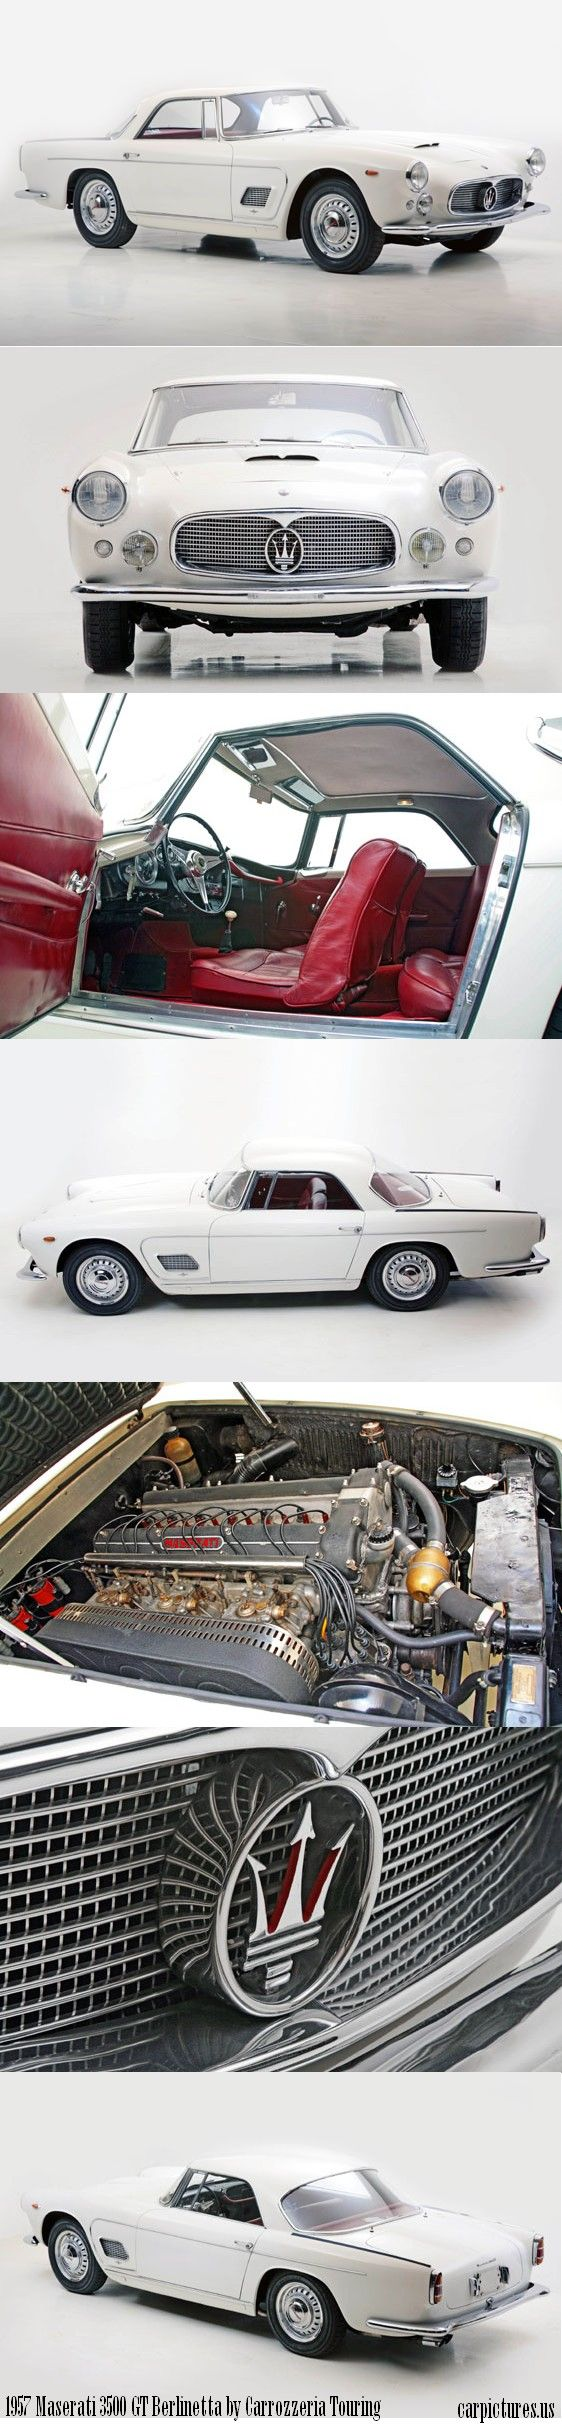 1955 chevy 210 sedan mitula cars - White Cars Da 1957 Maserati 3500 Gt Berlinetta By Carrozzeria Touring